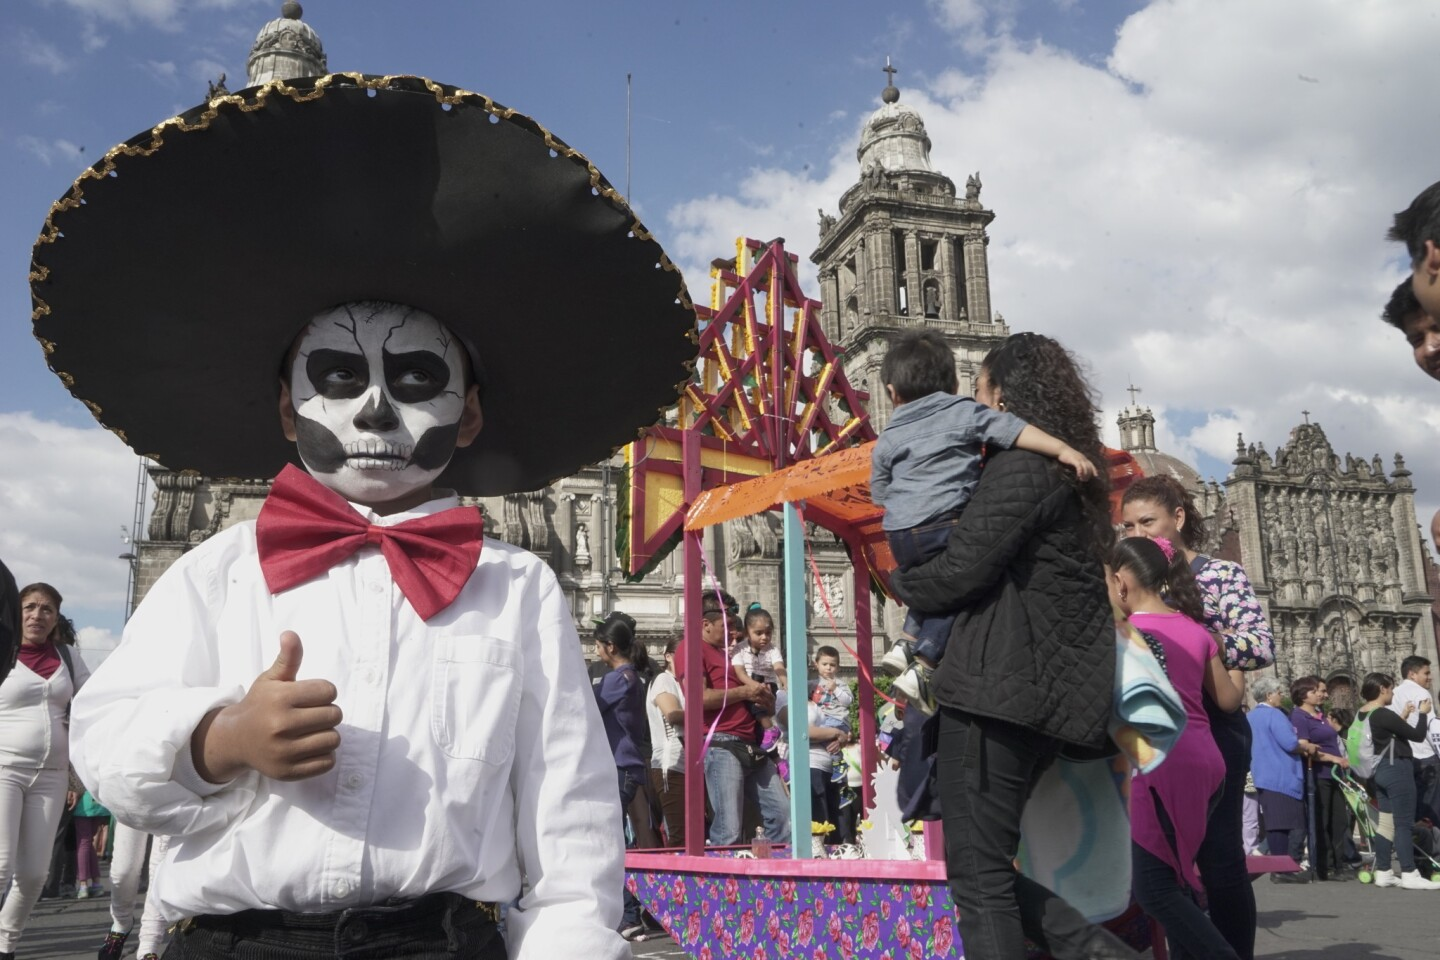 Dilan Bautista, 4, joins the festivities during Mexico City's first Day of the Dead parade. More than 250,000 people attended.